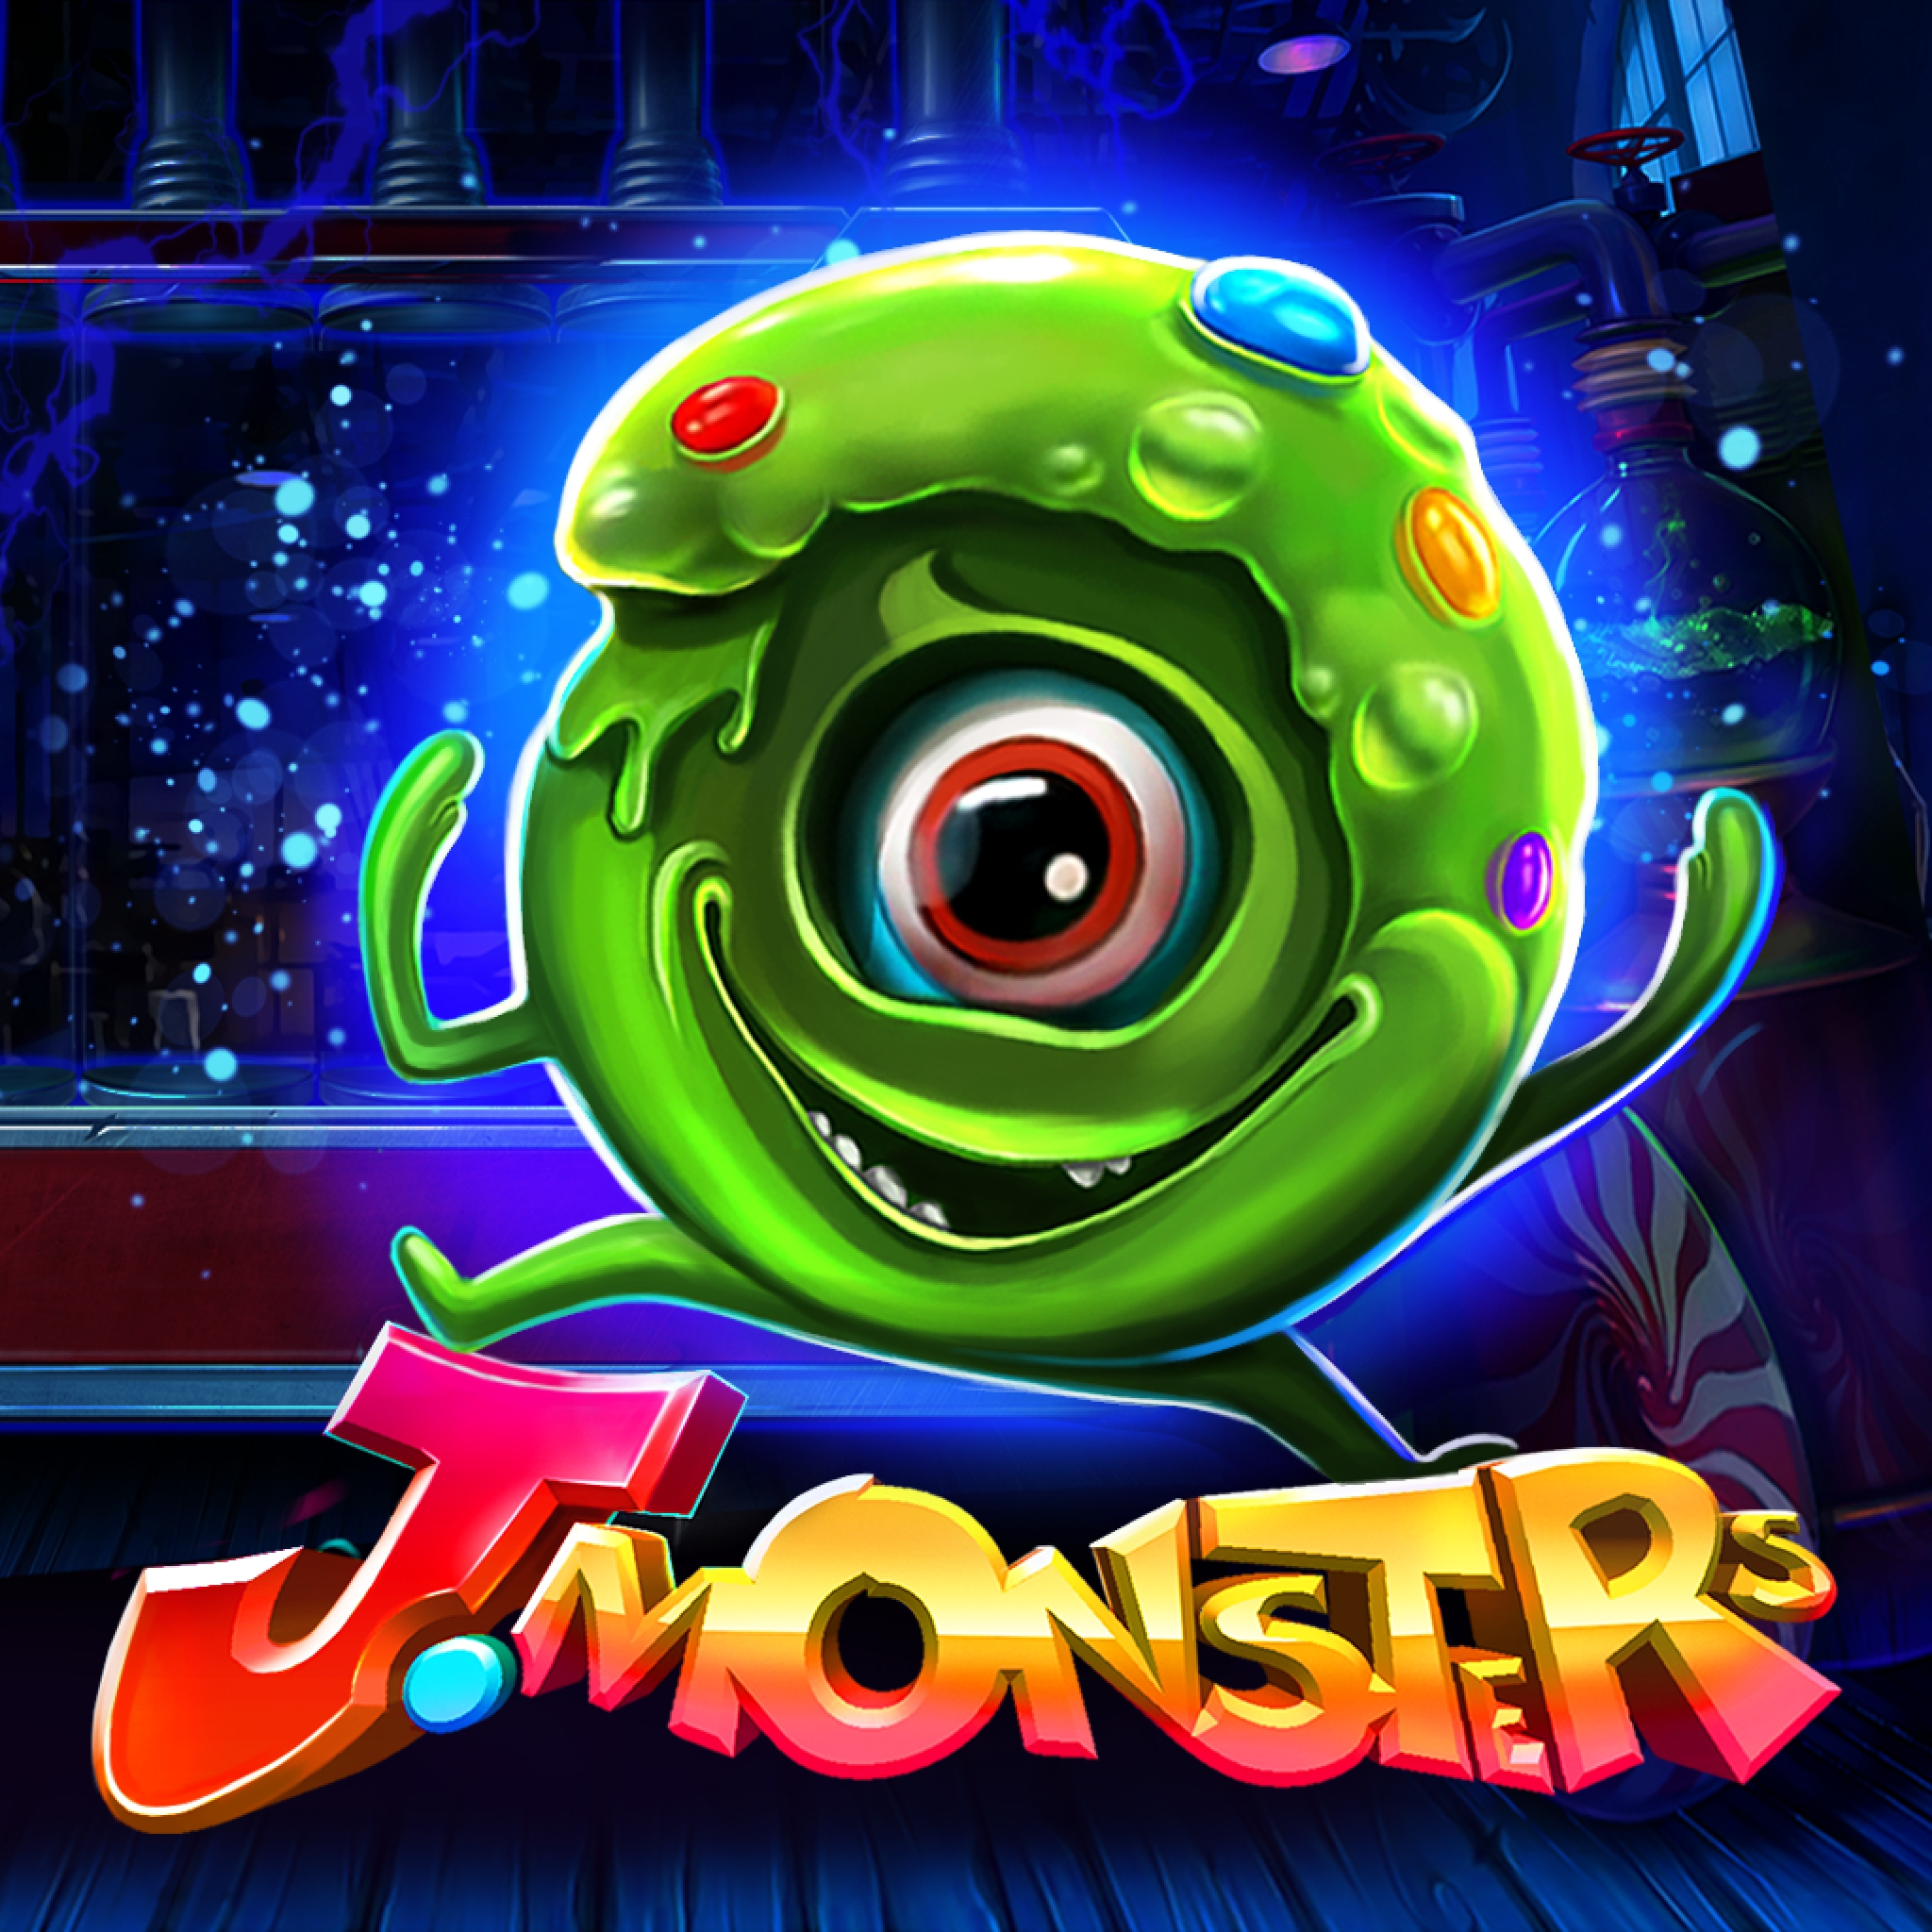 The J. Monsters Online Slot Demo Game by Belatra Games